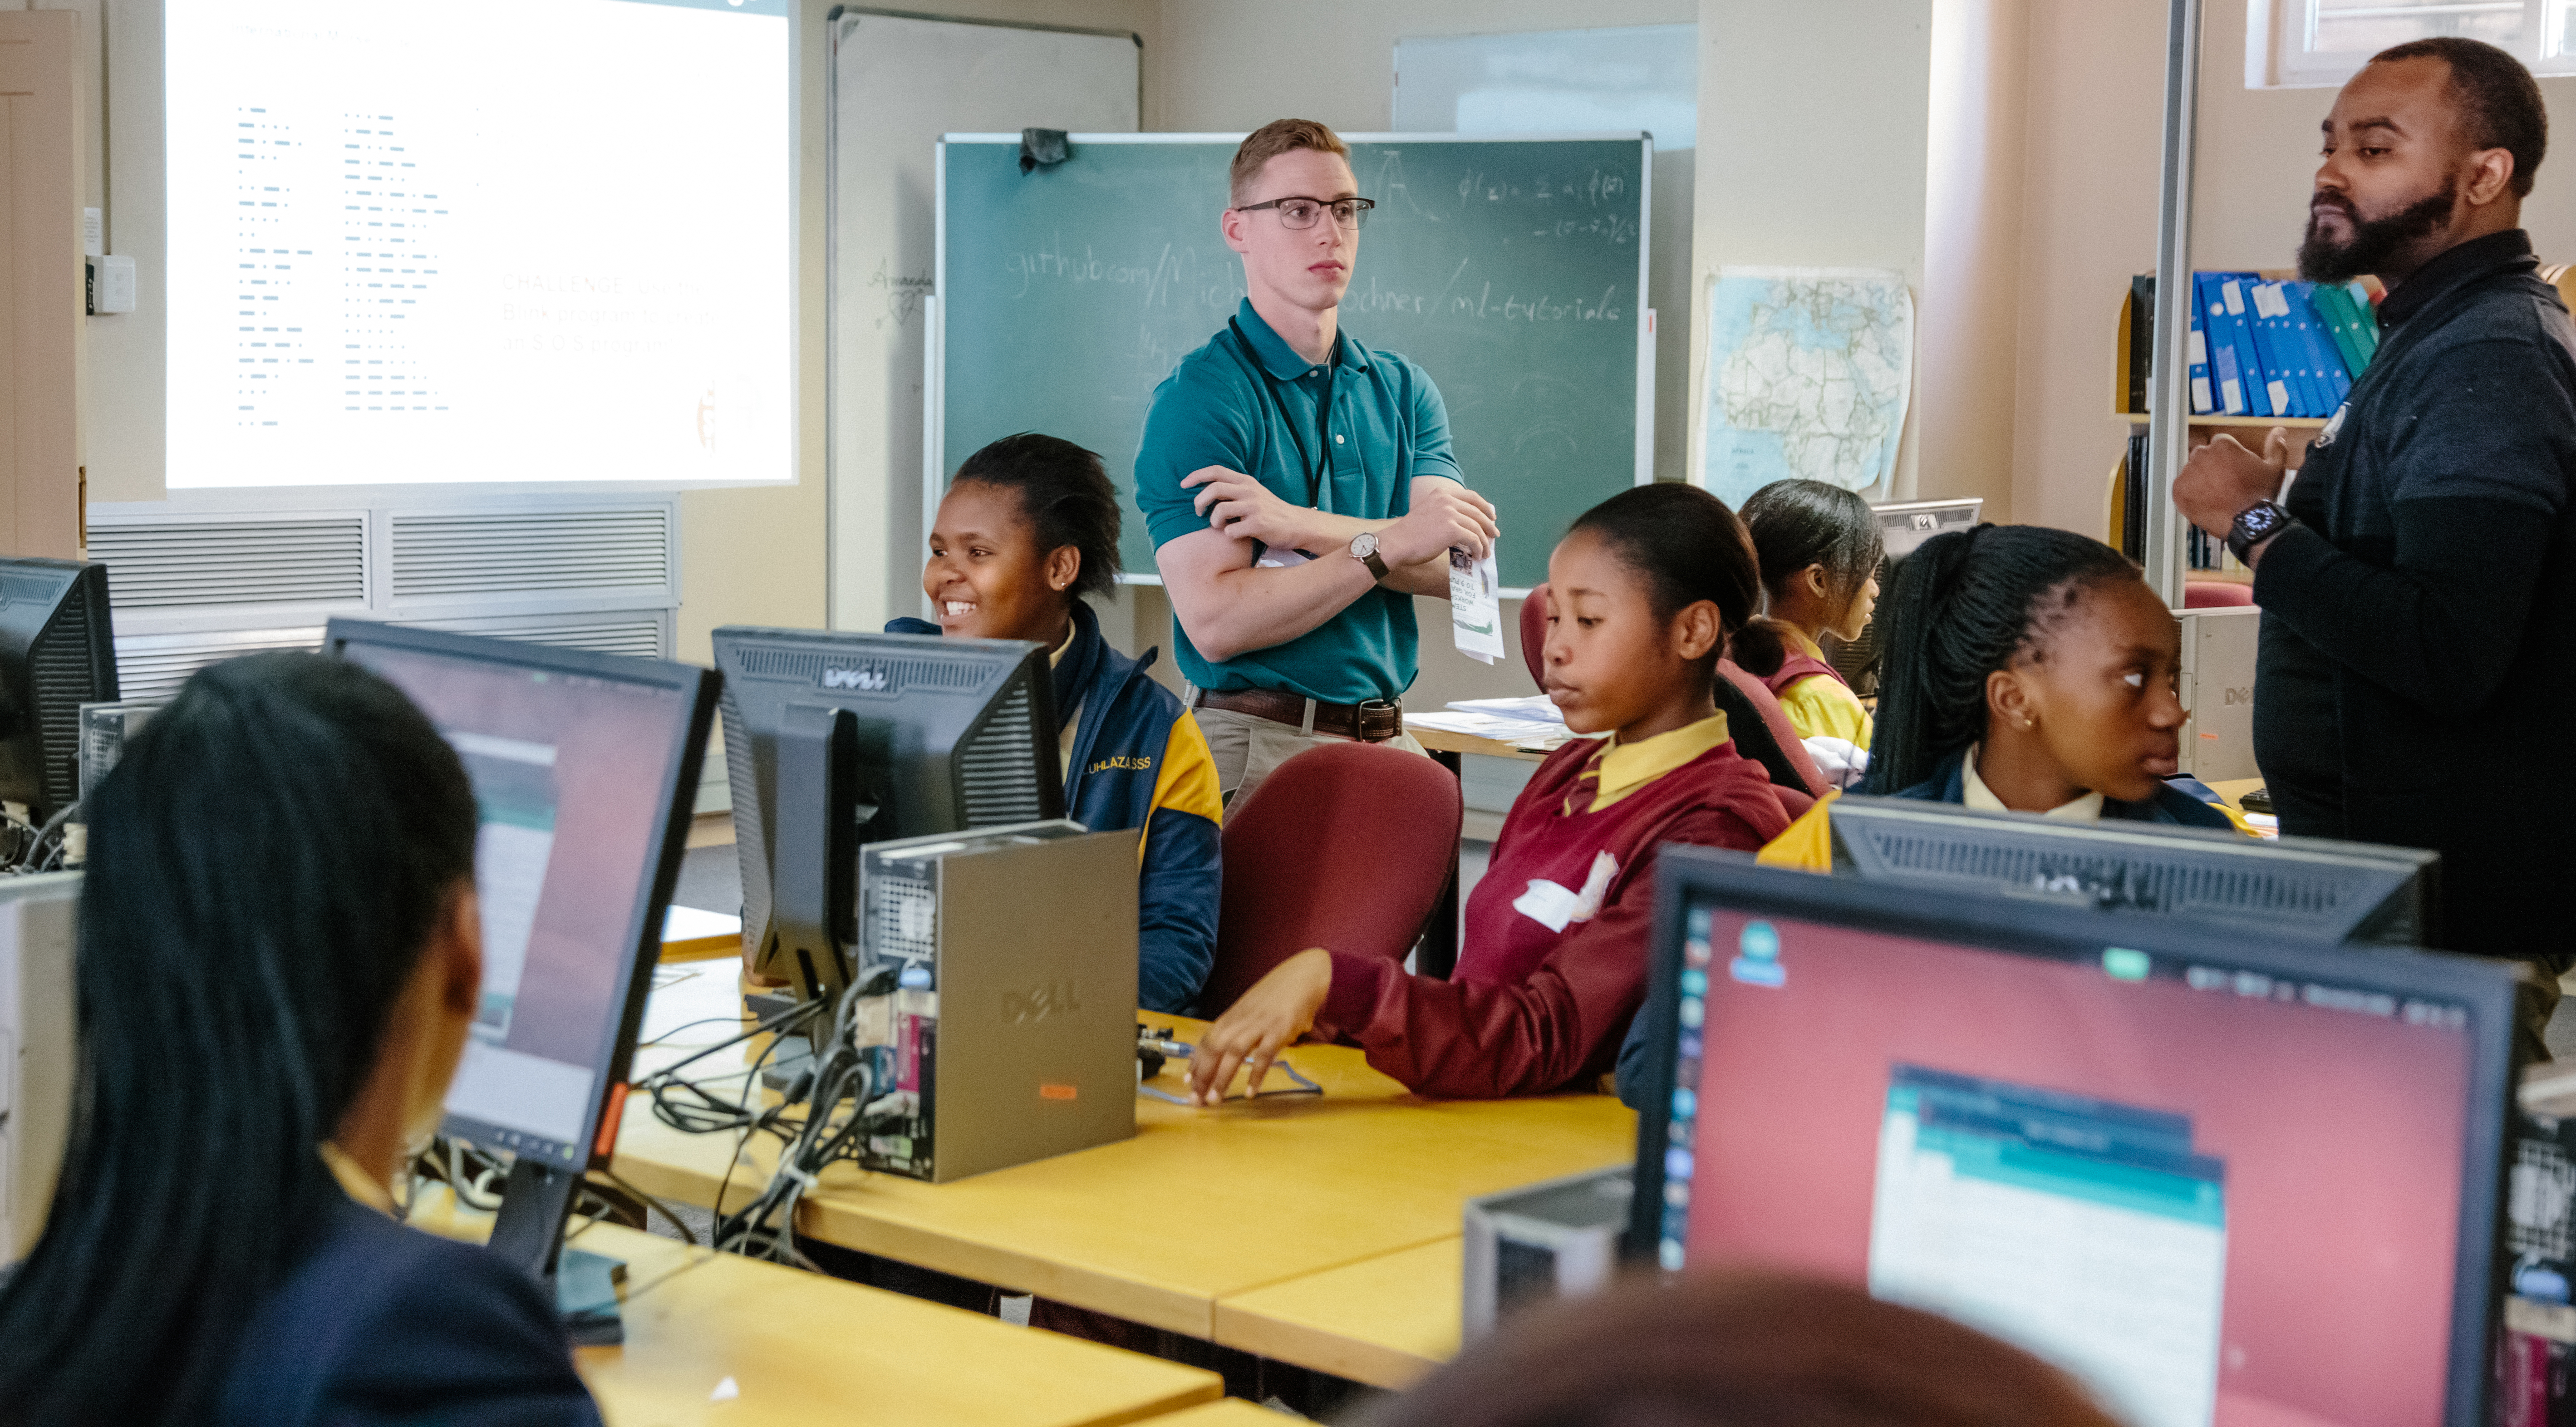 U.S. Military Academy Cadet Patrick Cowan, center, and Mathematics Professor Dr. Samuel Ivy assist South African students during practical exercises to promote Science, Technology, Engineering and Math (STEM) education as part of the U.S. Africa Command outreach efforts with the African Institute for Mathematical Sciences in Muizenberg, South Africa, June 25, 2018. (Photo courtesy Yasmin Hankel, AIMS Media Specialist)